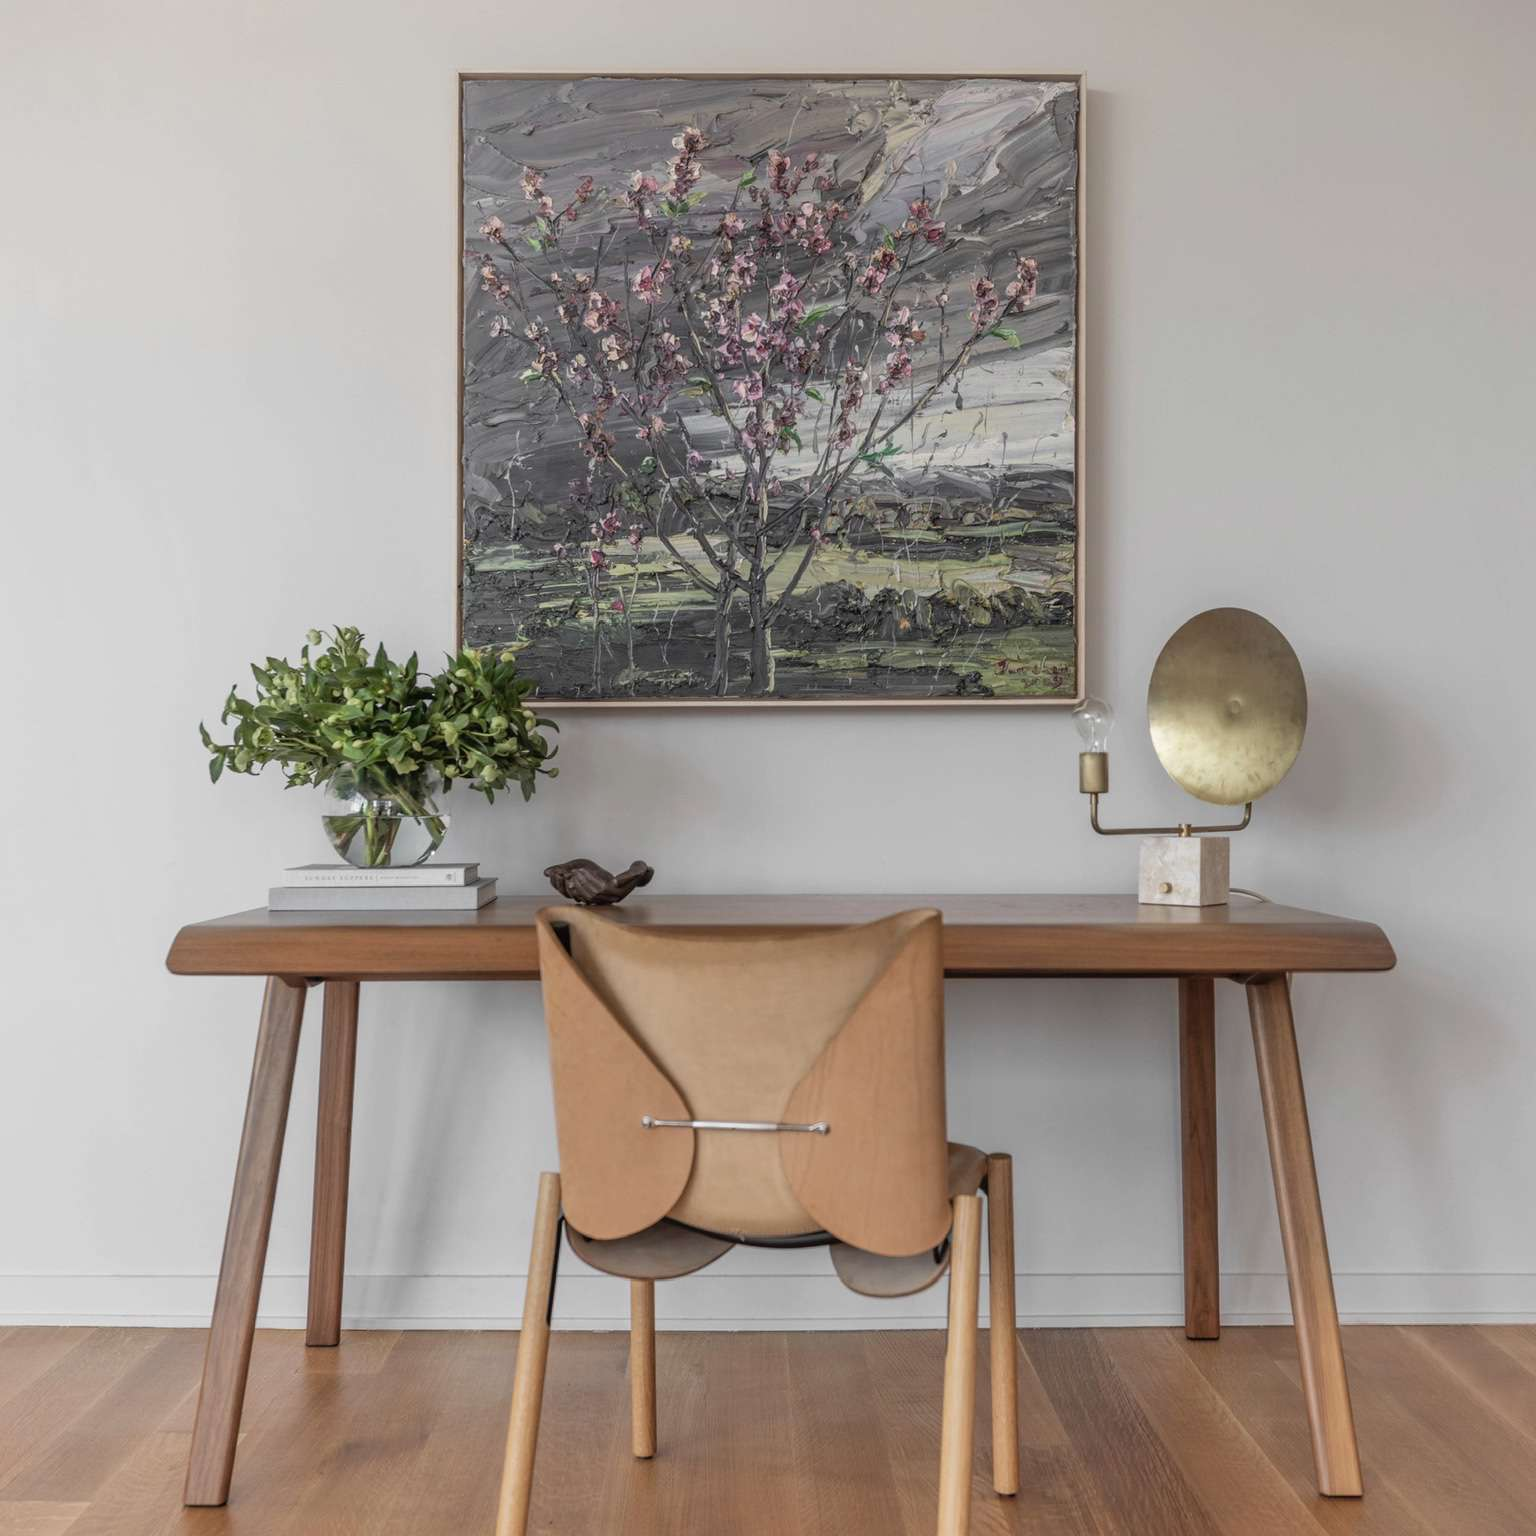 yael weiss home tour - home office set up